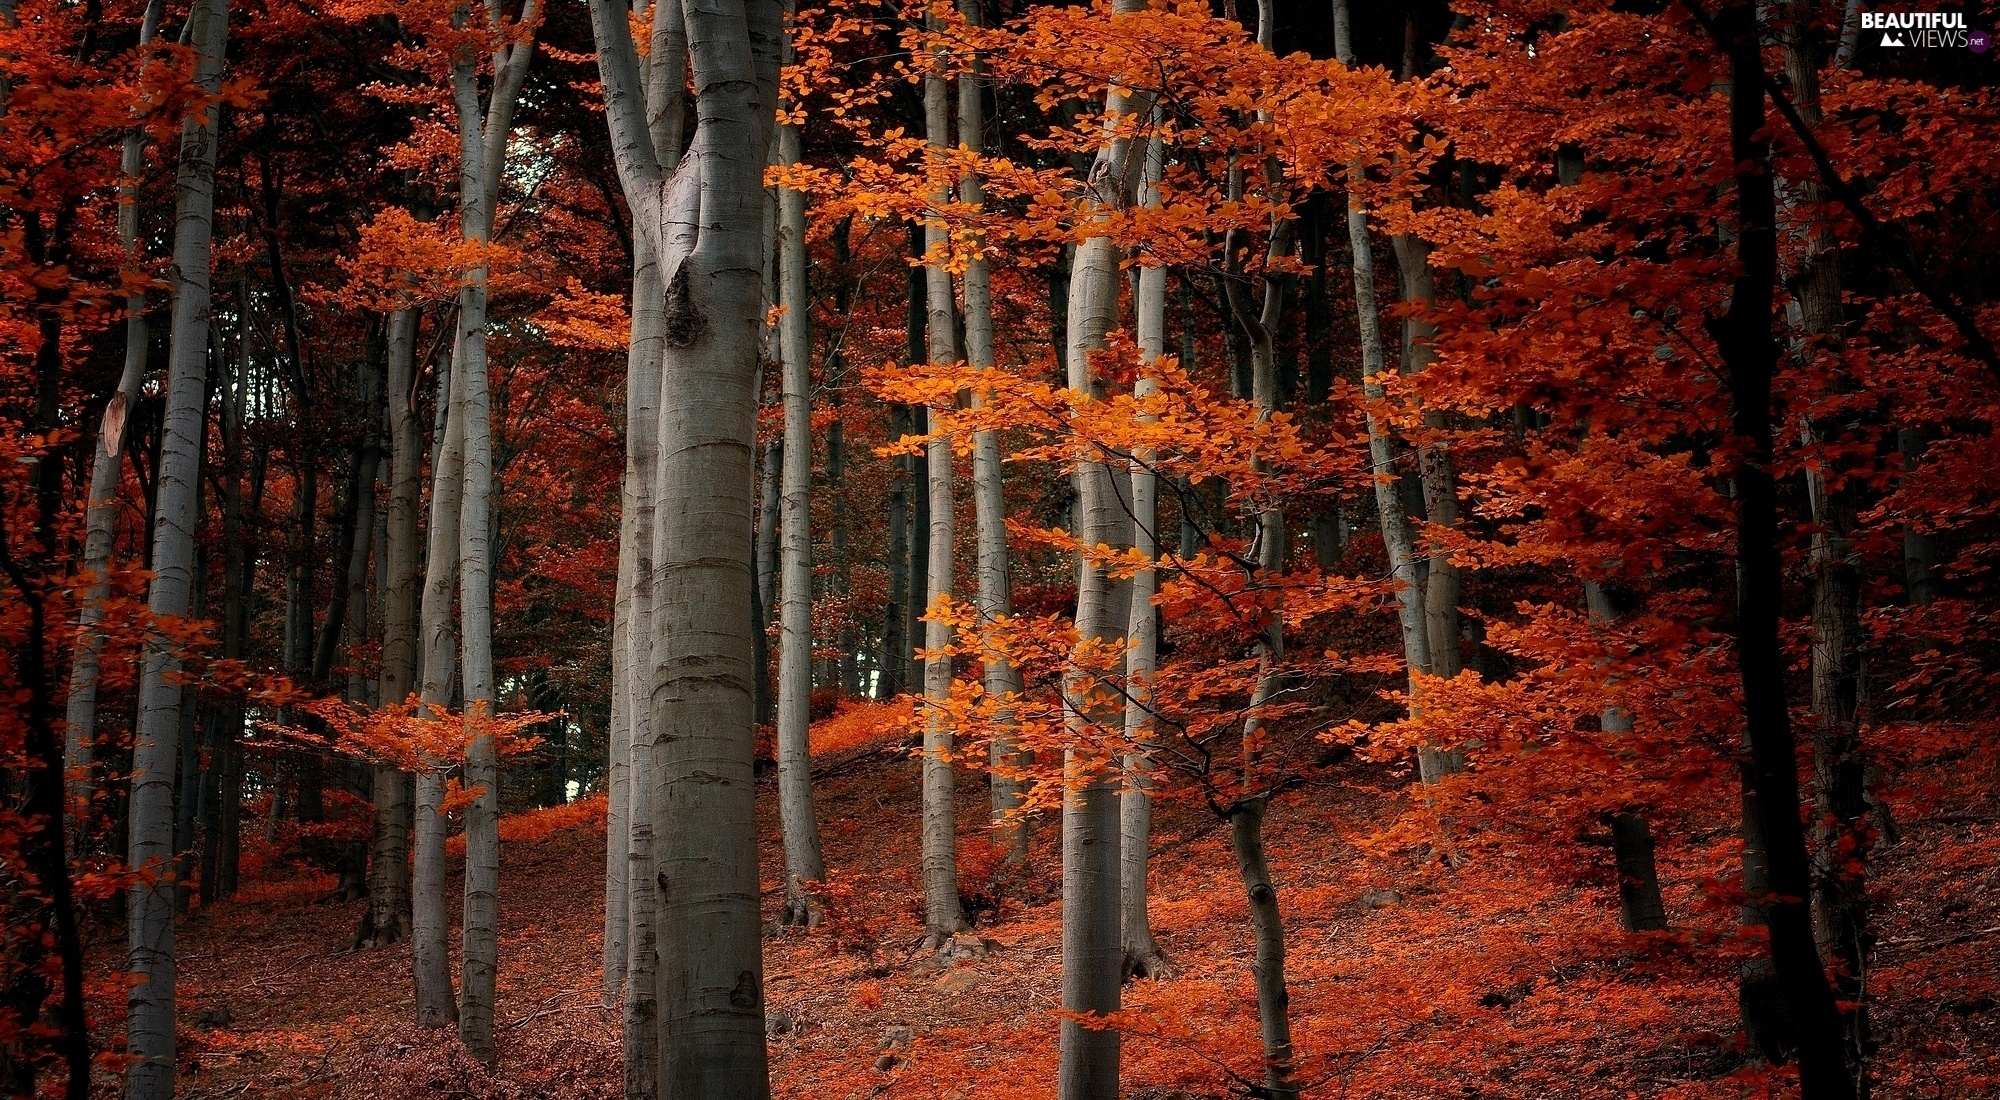 autumn, forest, Leaf